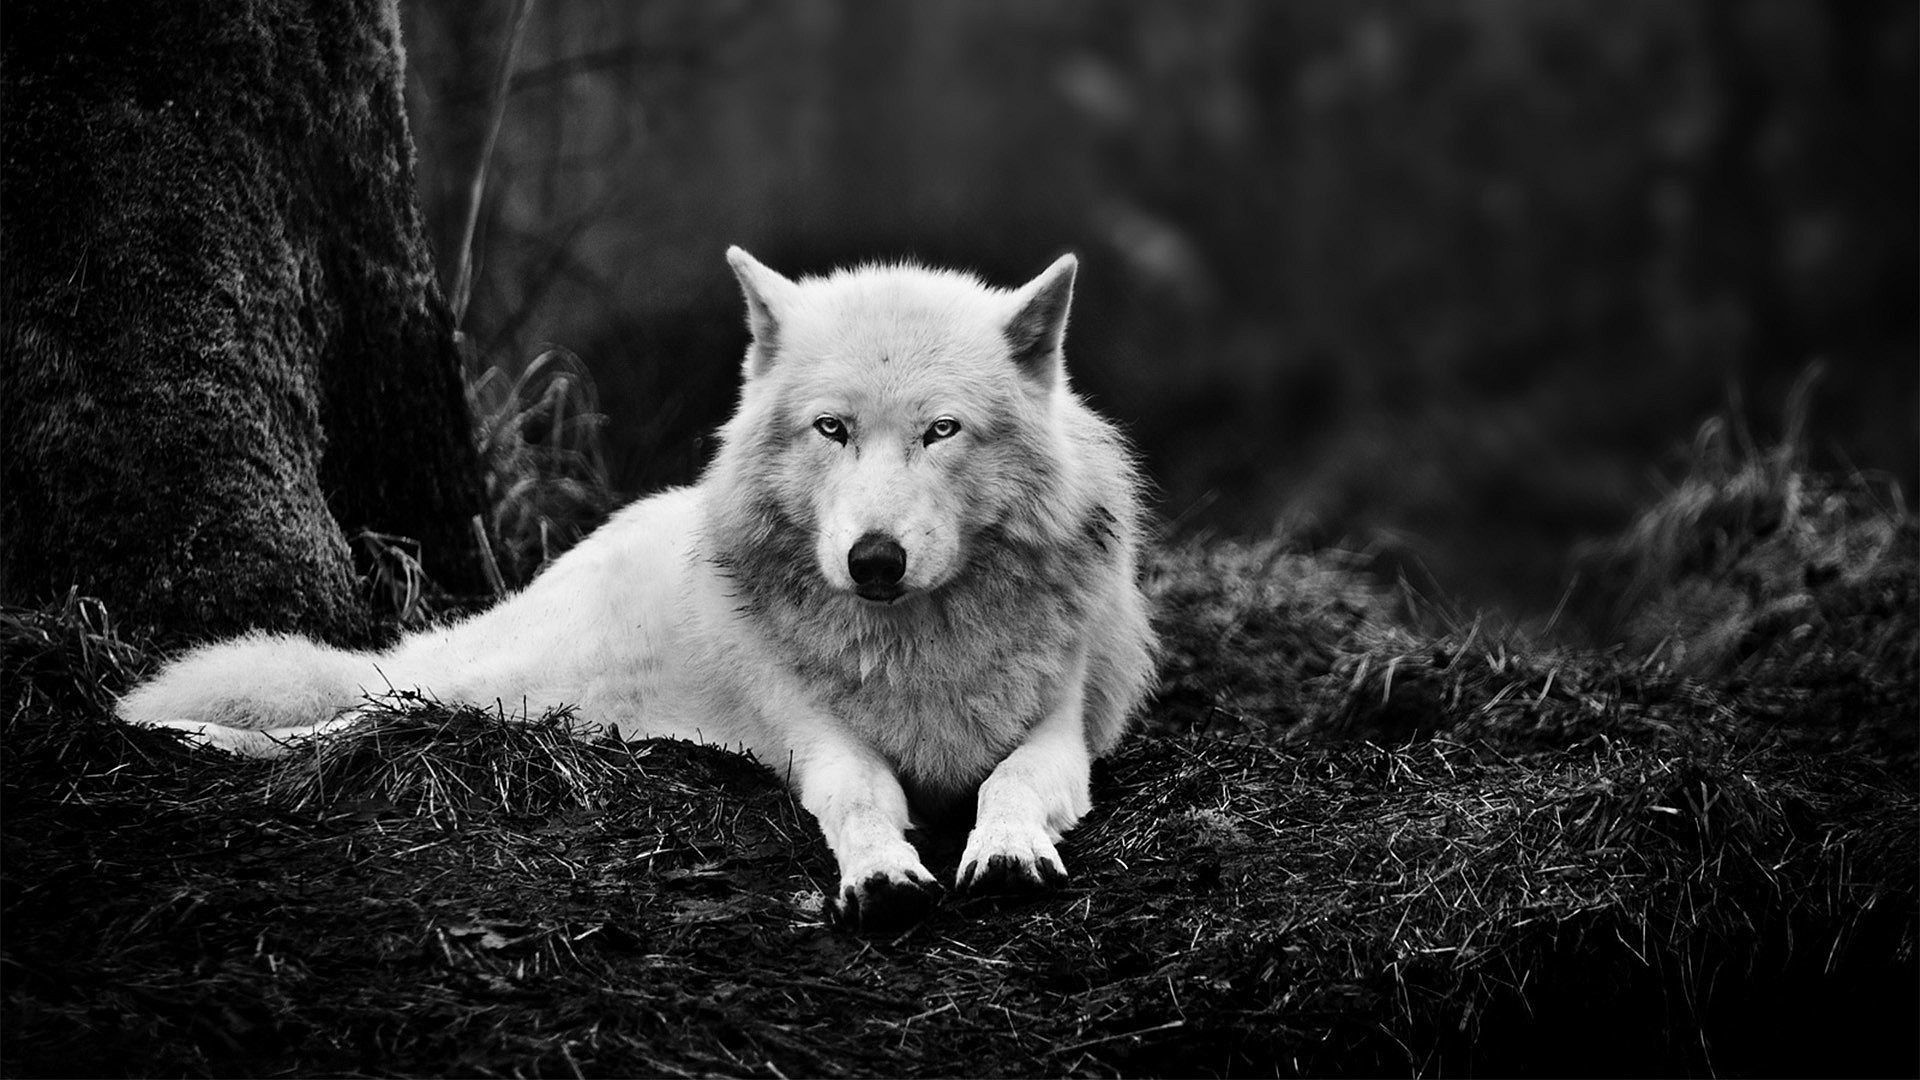 Res 1920x1080 Wolf Wallpaper High Quality Wolf Wallpaper Animal Wallpaper White Wolf